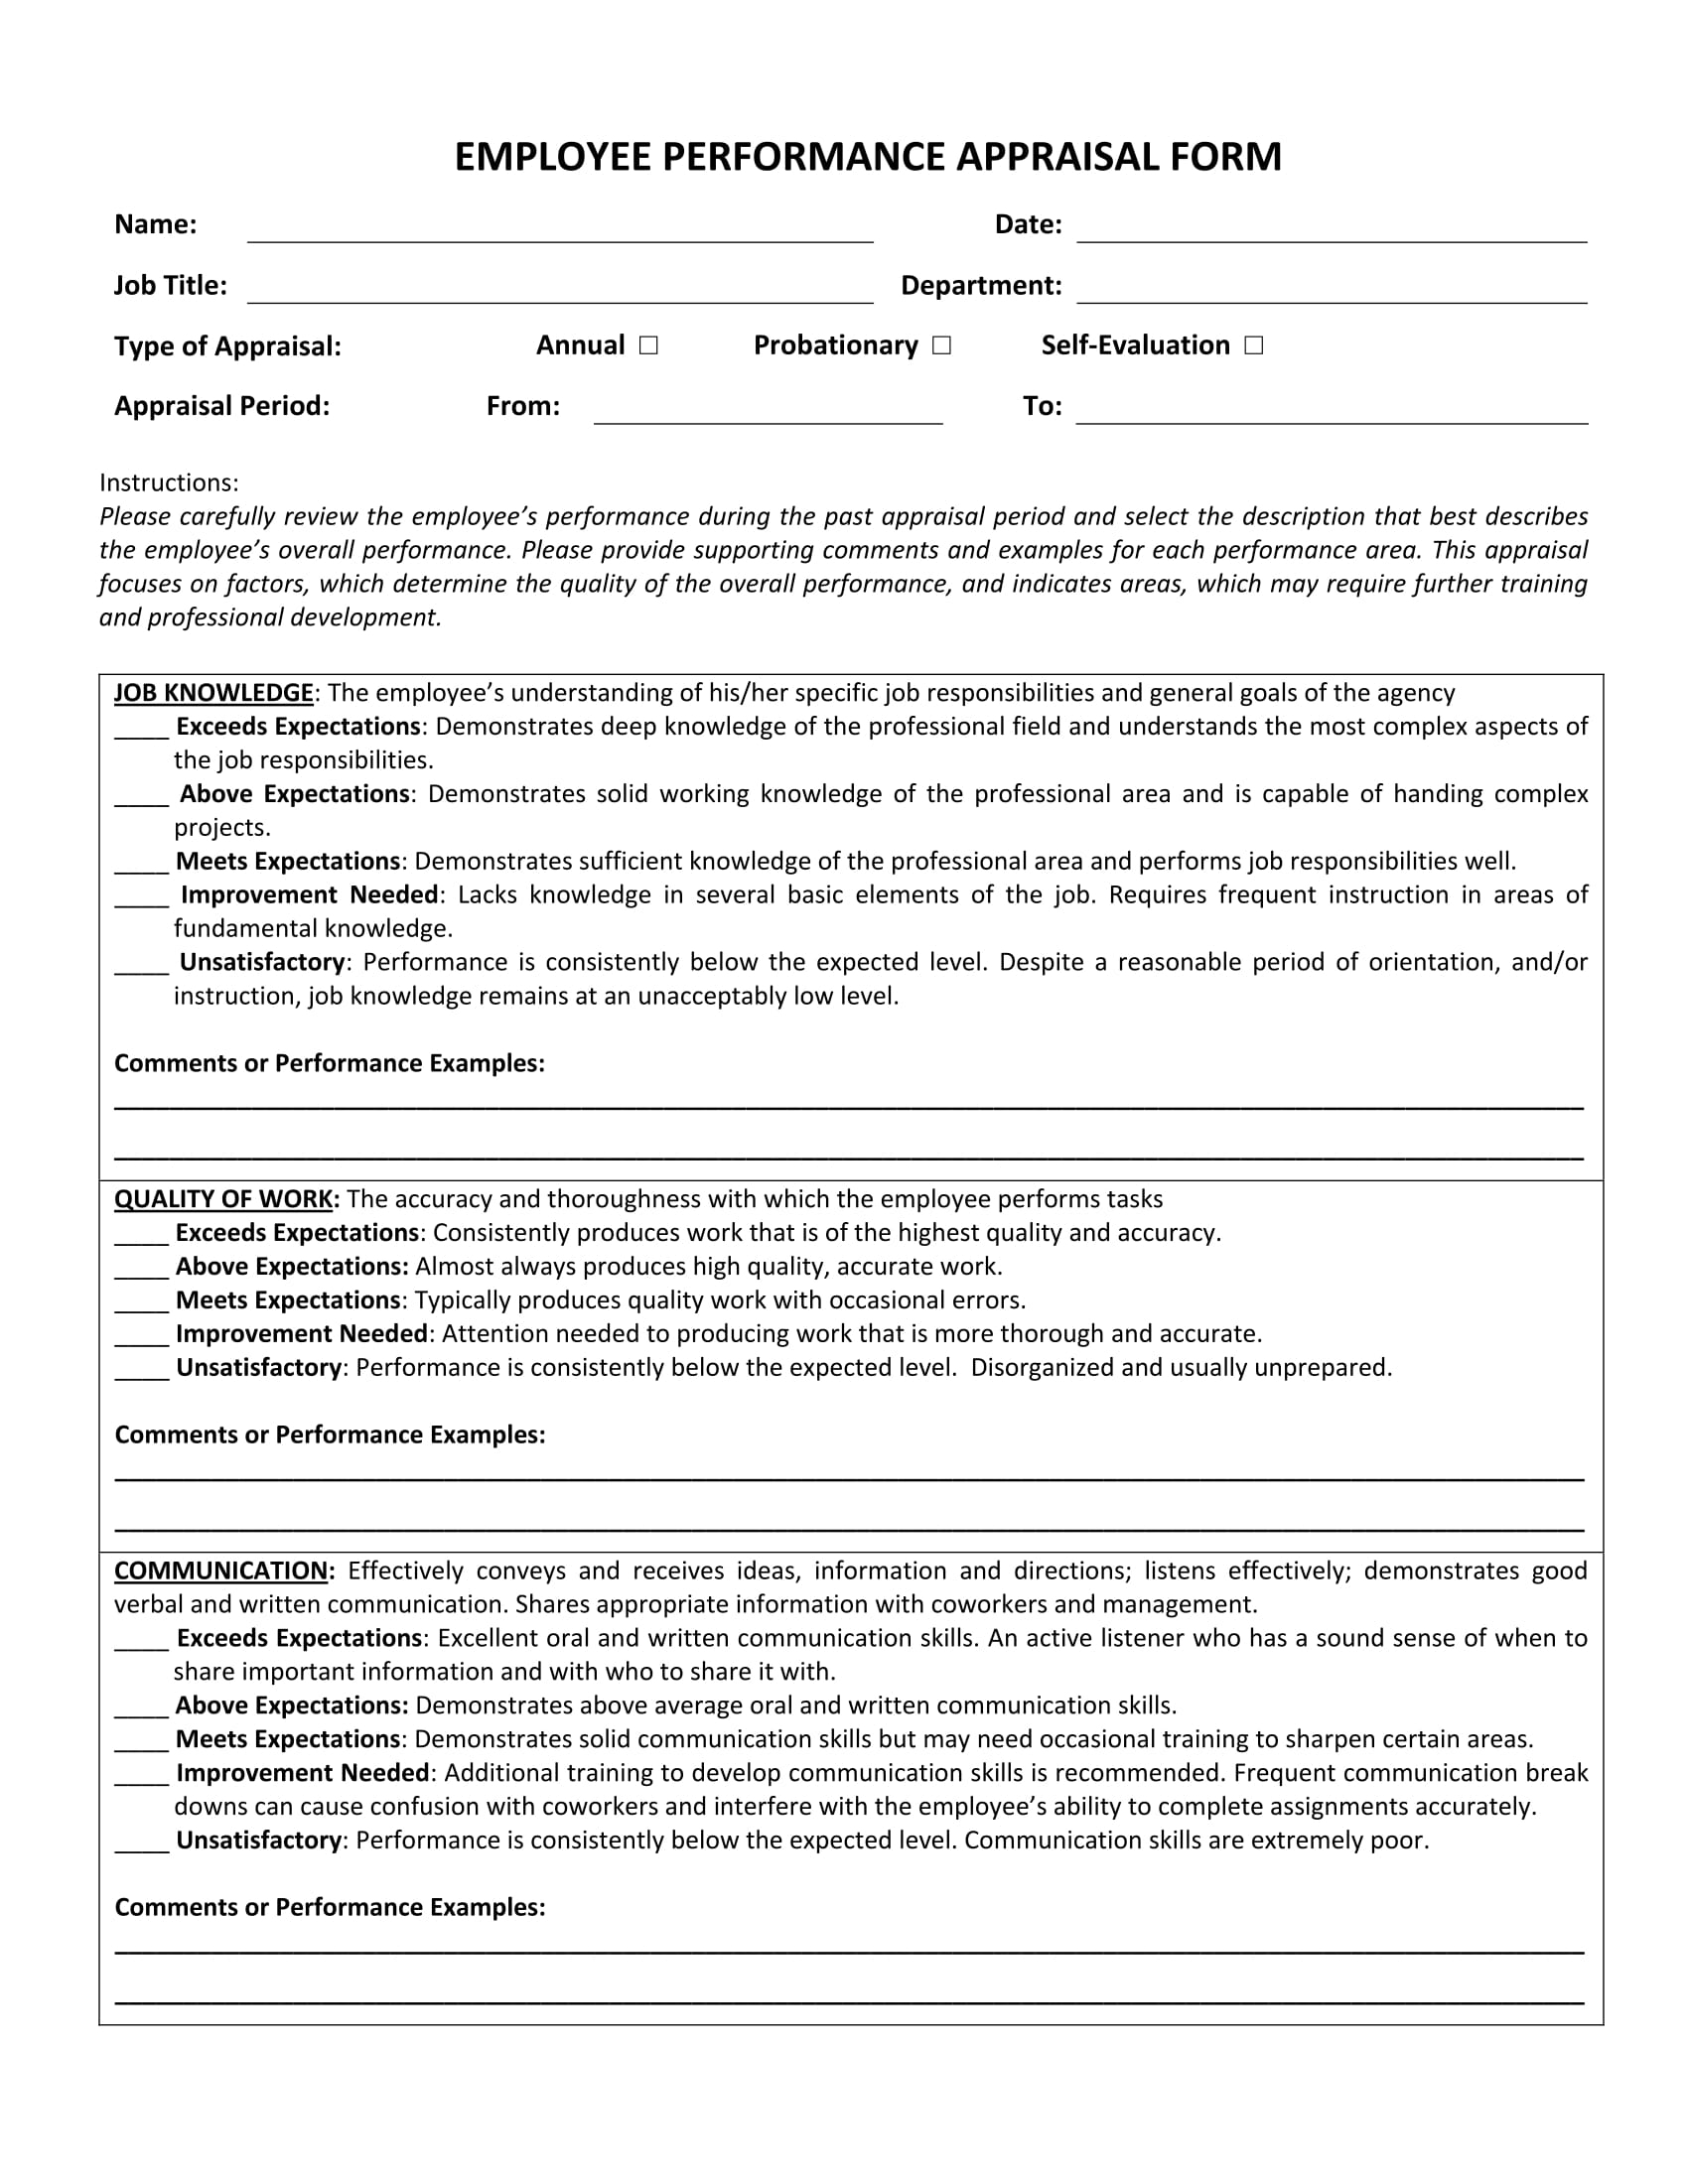 14 employee appraisal forms free word pdf xls format download annual employee performance appraisal form 1 falaconquin